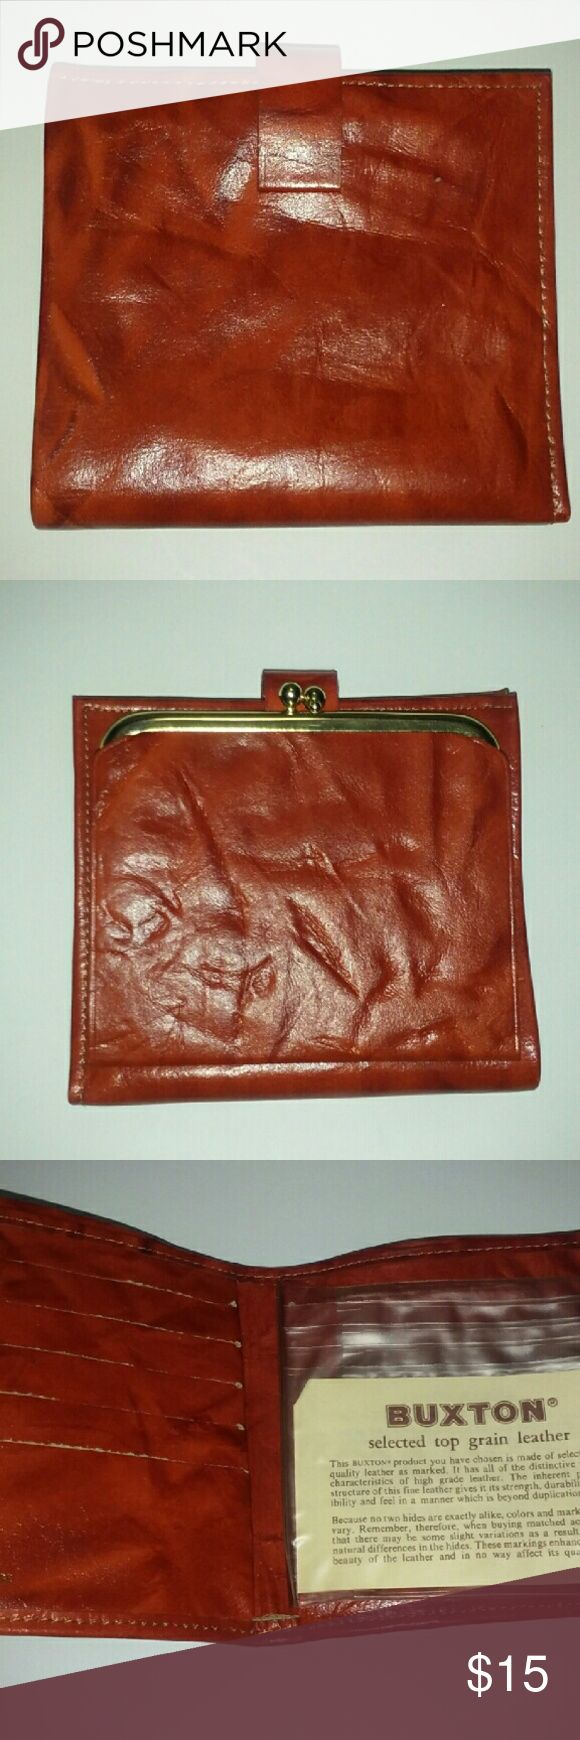 LEATHER BUXTON WALLET WITH COIN Buxton Top Grain Cowhide Leather wallet with coin holder Buxton Accessories